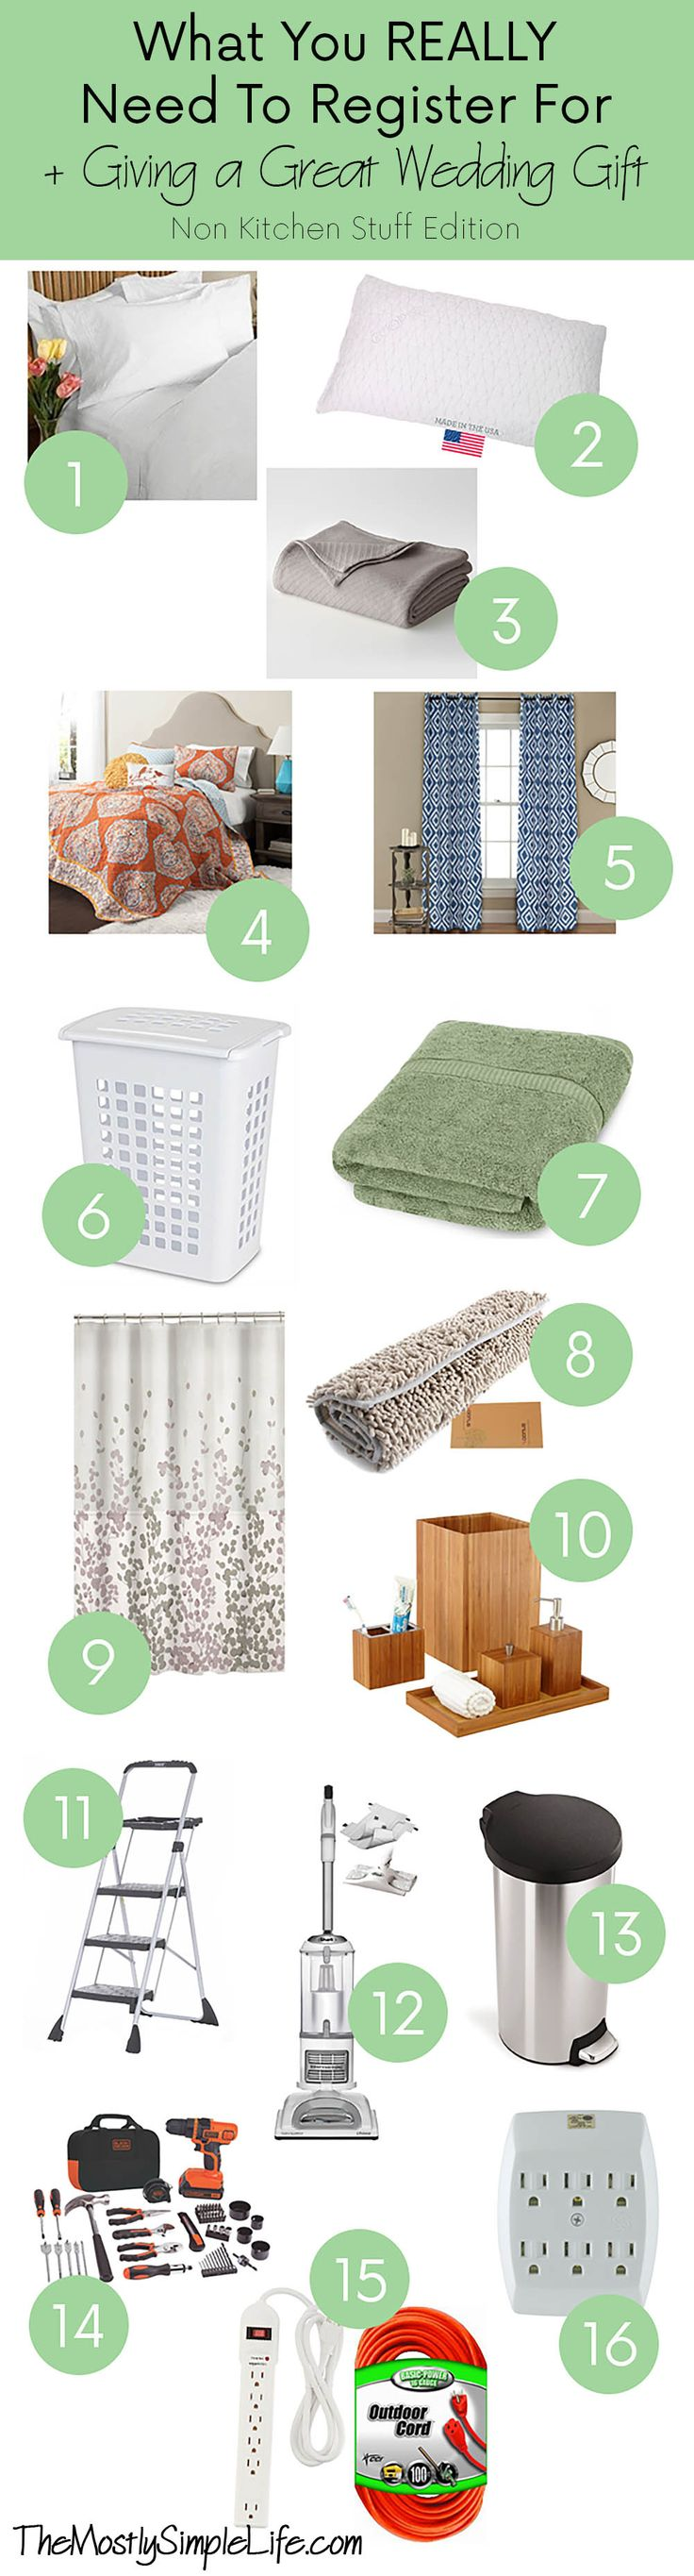 What you REALLY need to register for. The essentials, so that you don't end up with tons of wedding gifts, but are missing the most important things. + Giving a great wedding gift that the bride and groom will use all the time! Minimalist home supplies. What you really need for your home.